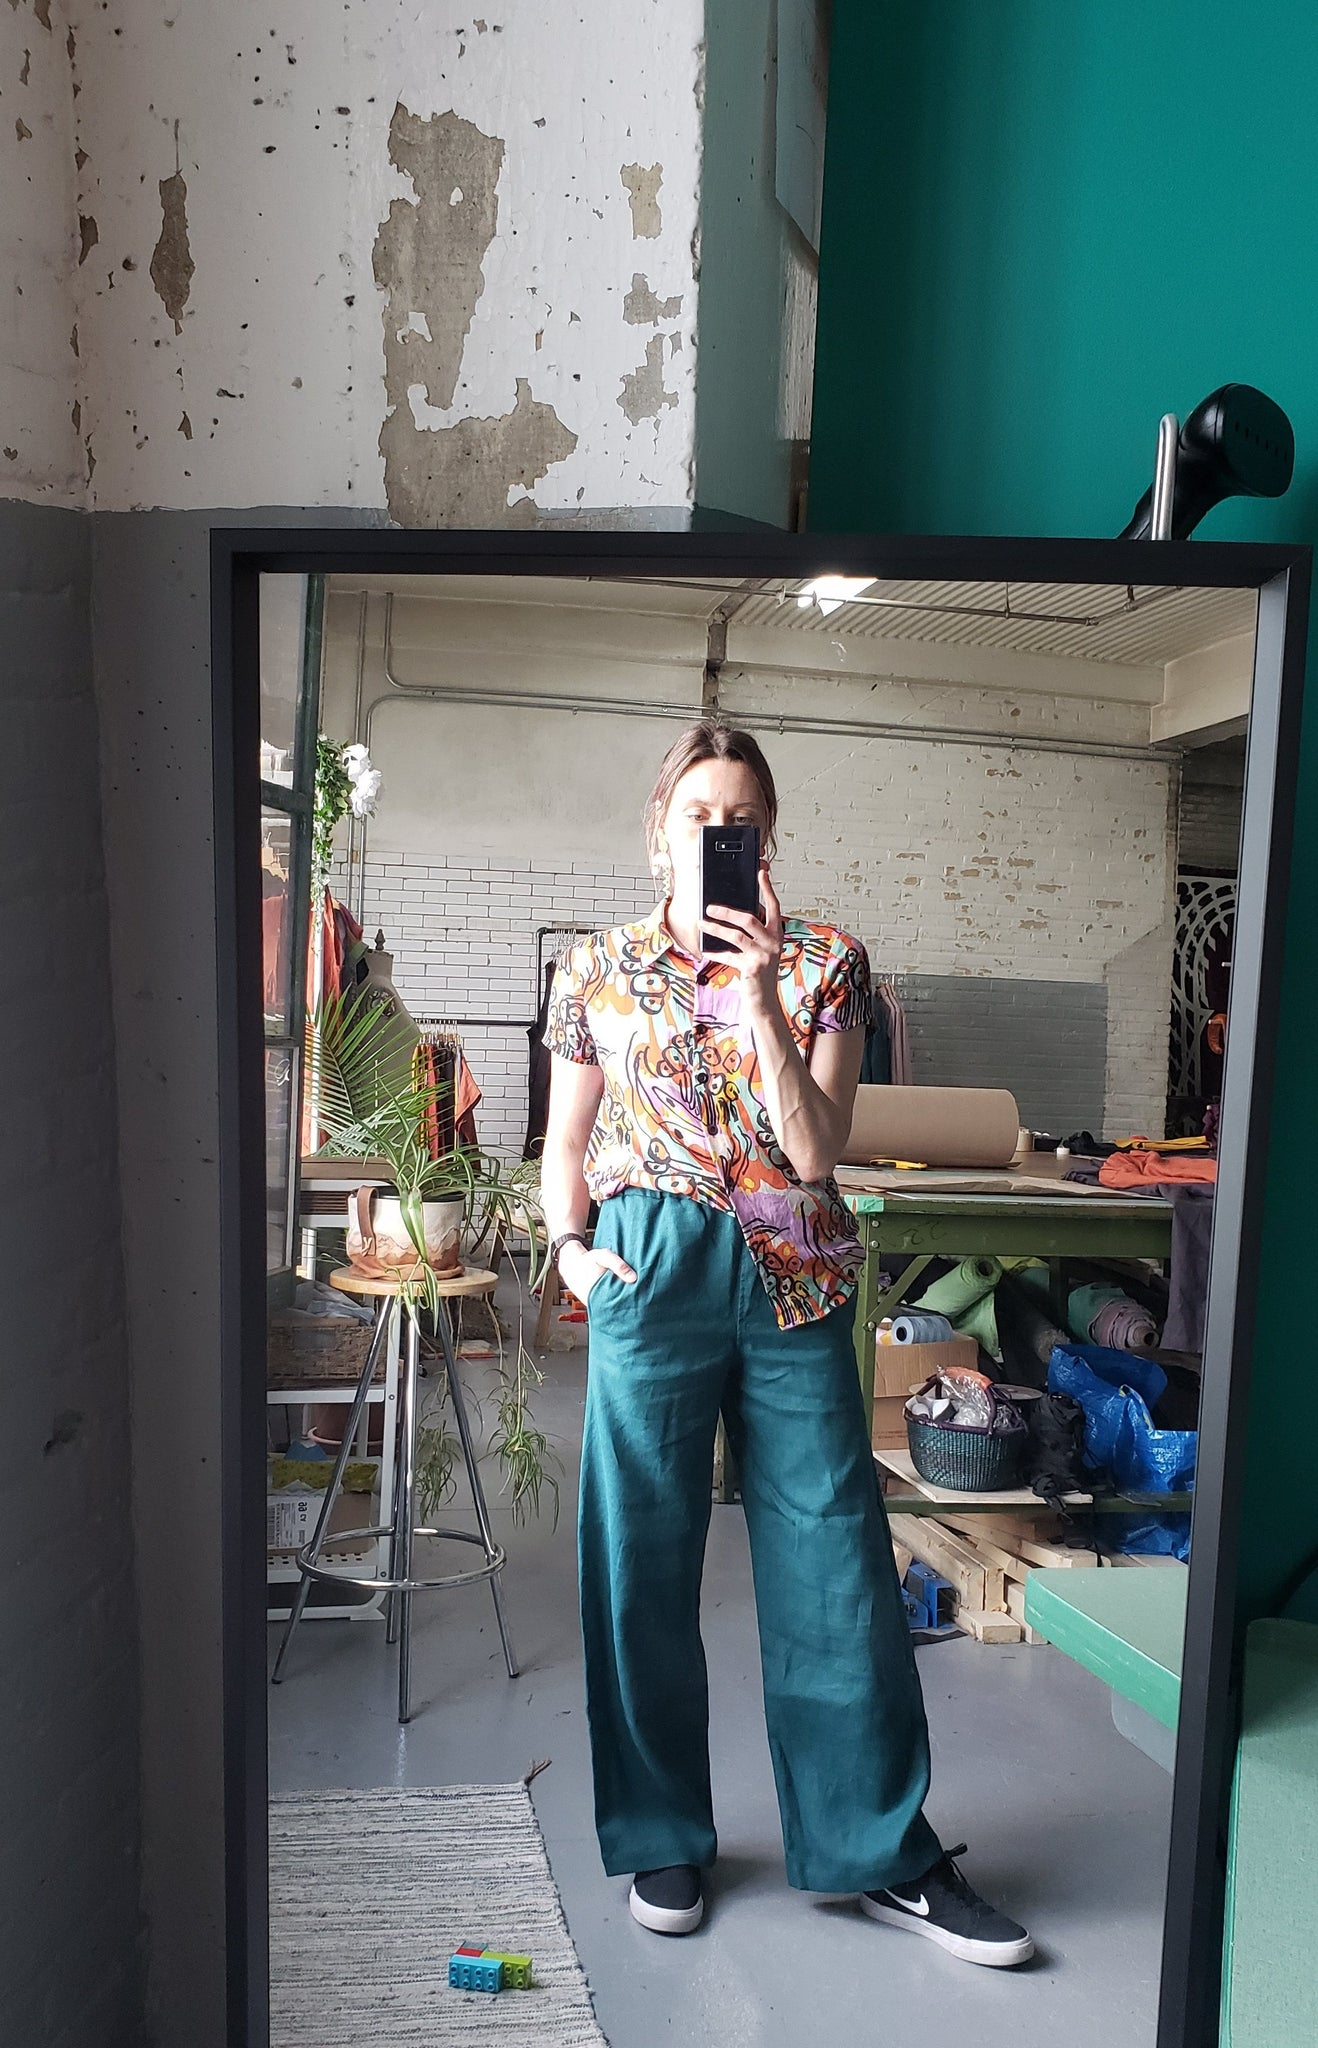 woman standing in mirror taking a picture wearing a brightly coloured shirt with teal linen pants and skate shoes